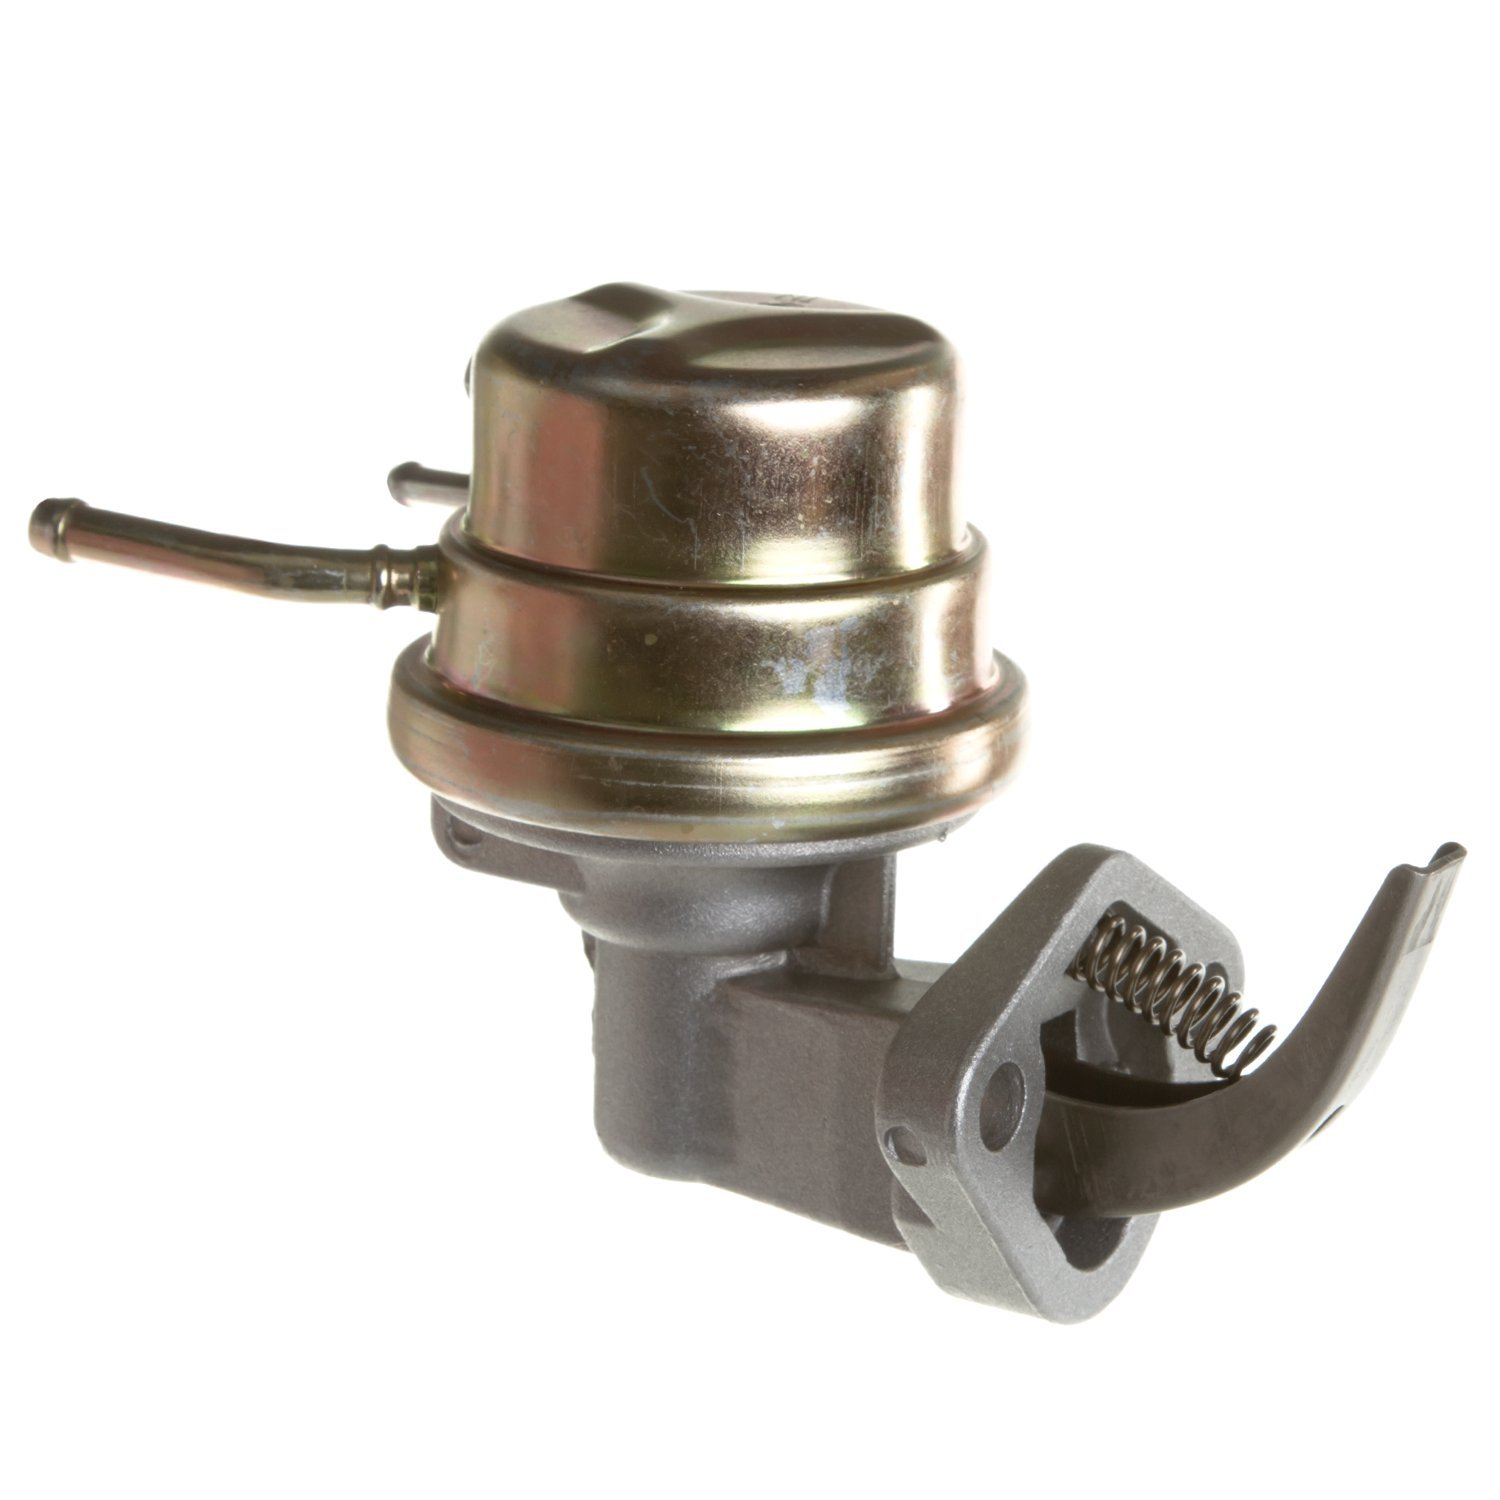 Delphi MF0047 Mechanical Fuel Pump